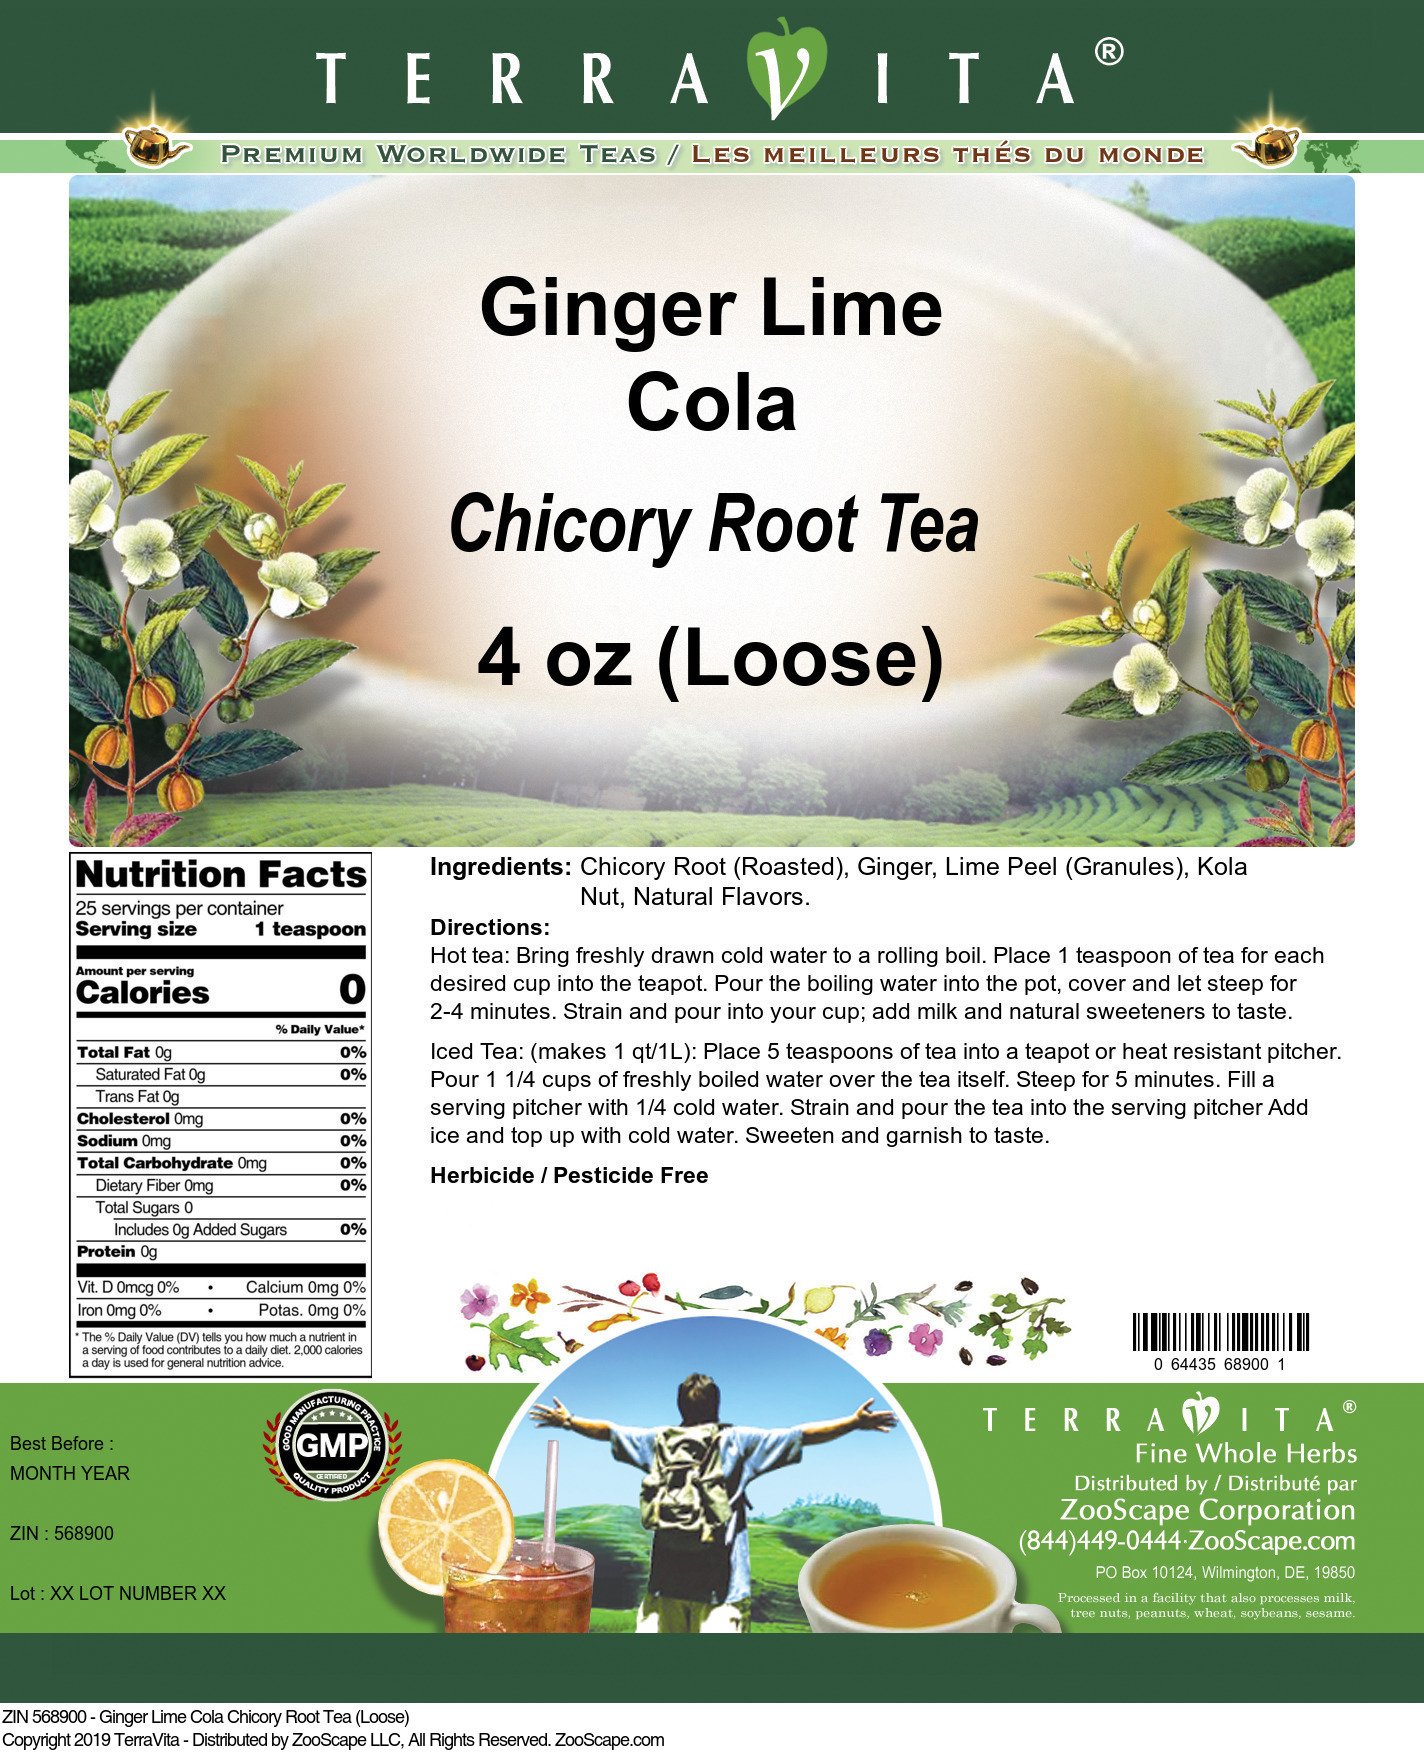 Ginger Lime Cola Chicory Root Tea (Loose)